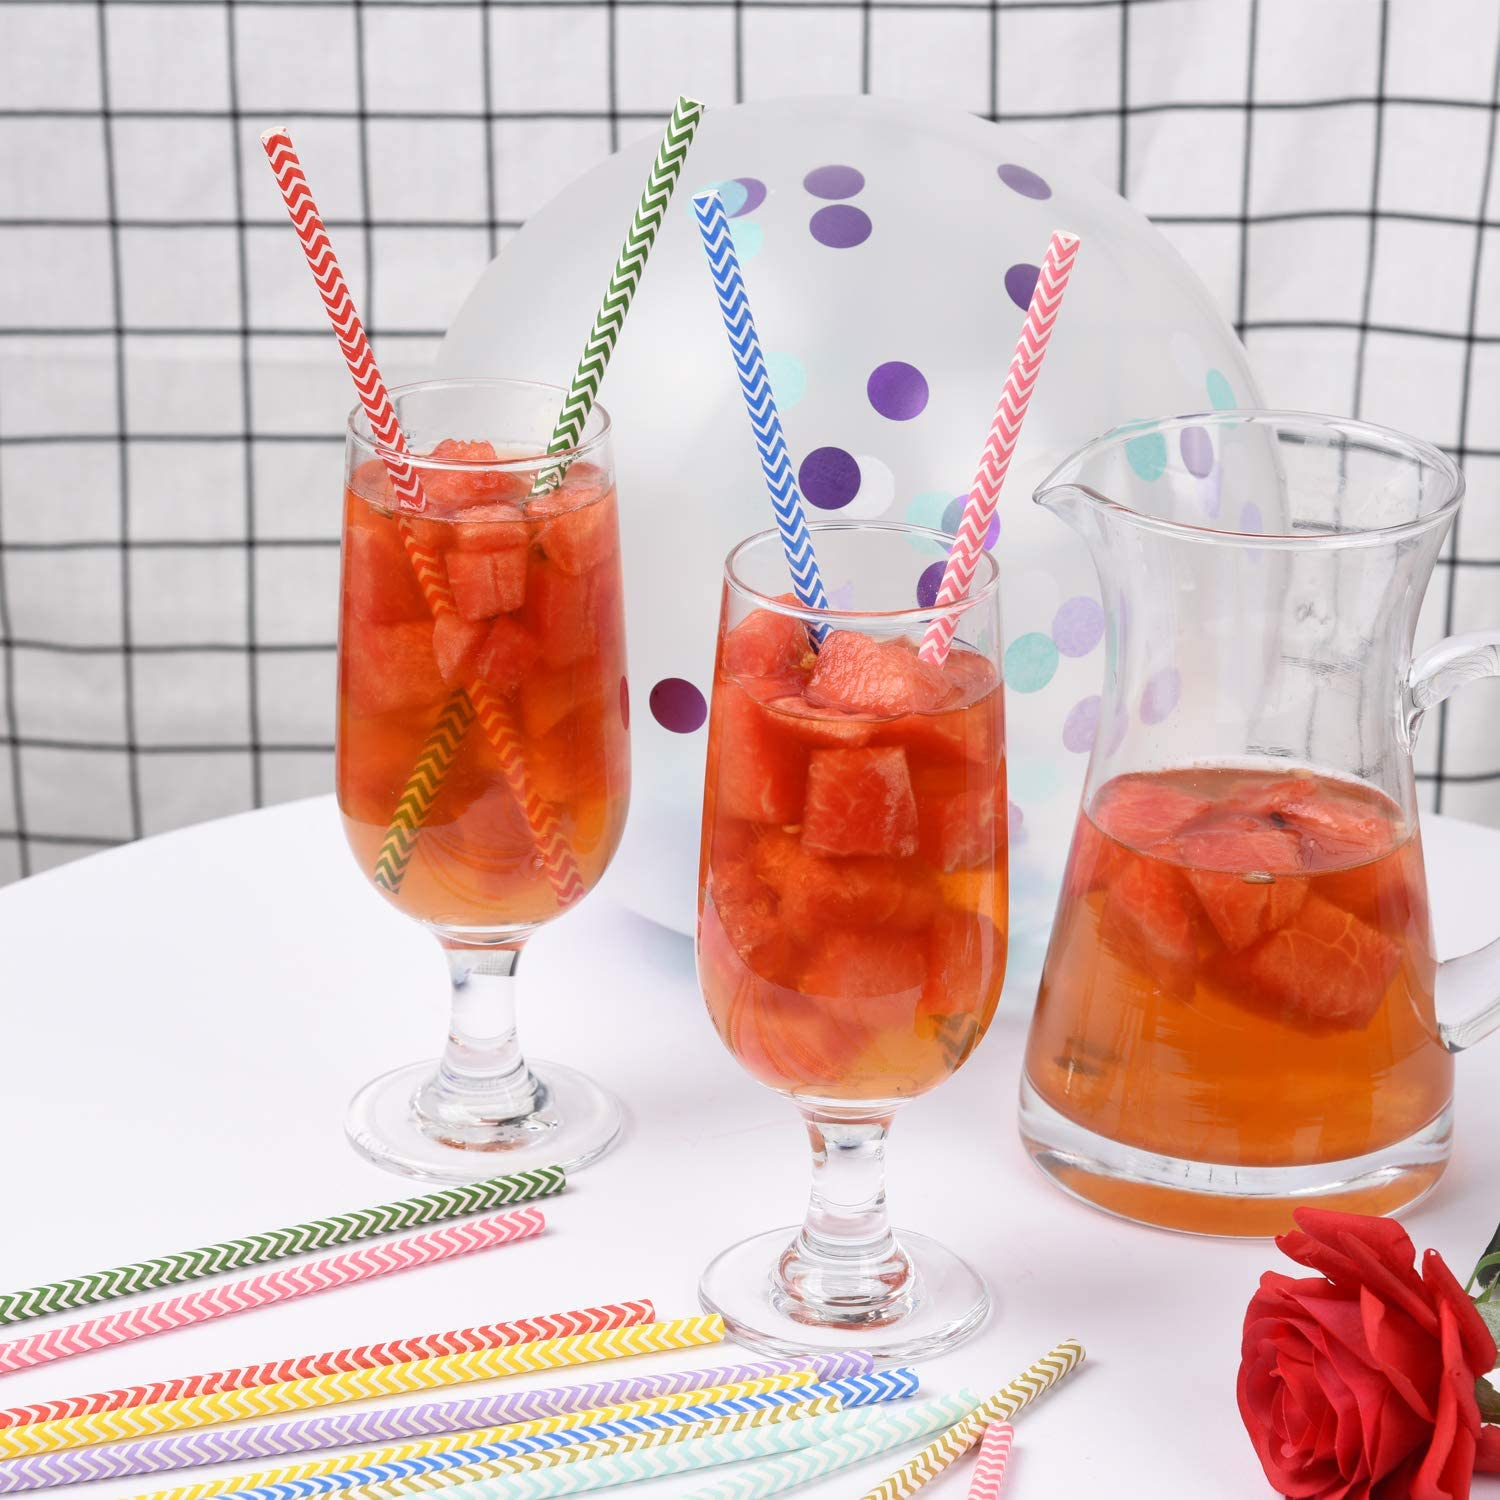 Suitable for Parties Biodegradable Recyclable Drinking Straws 300 PCS Paper Straws Great for Cocktails Weddings /& All Occasions /… Cold Drinks /& Juices